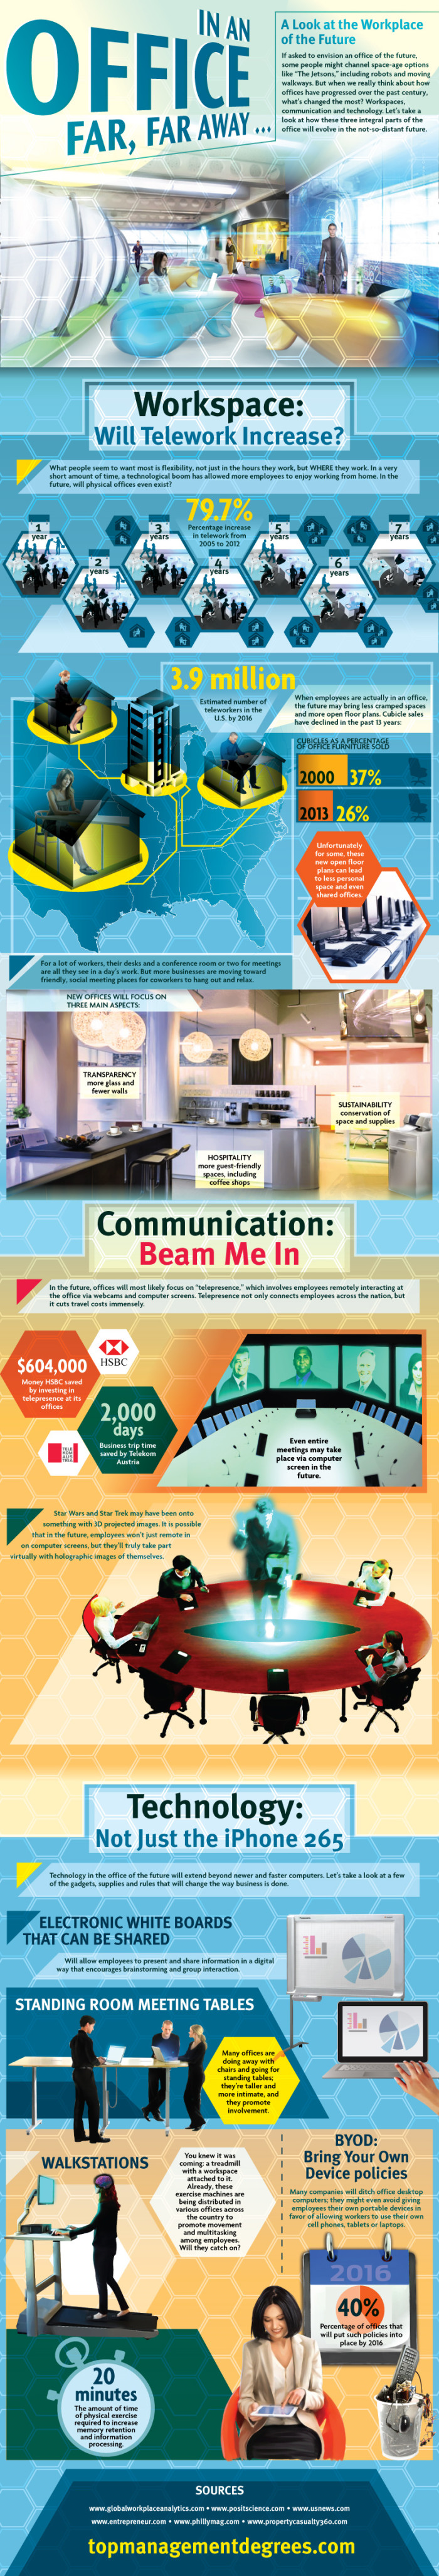 What Does The Office of the Future Look Like? [INFOGRAPHIC]